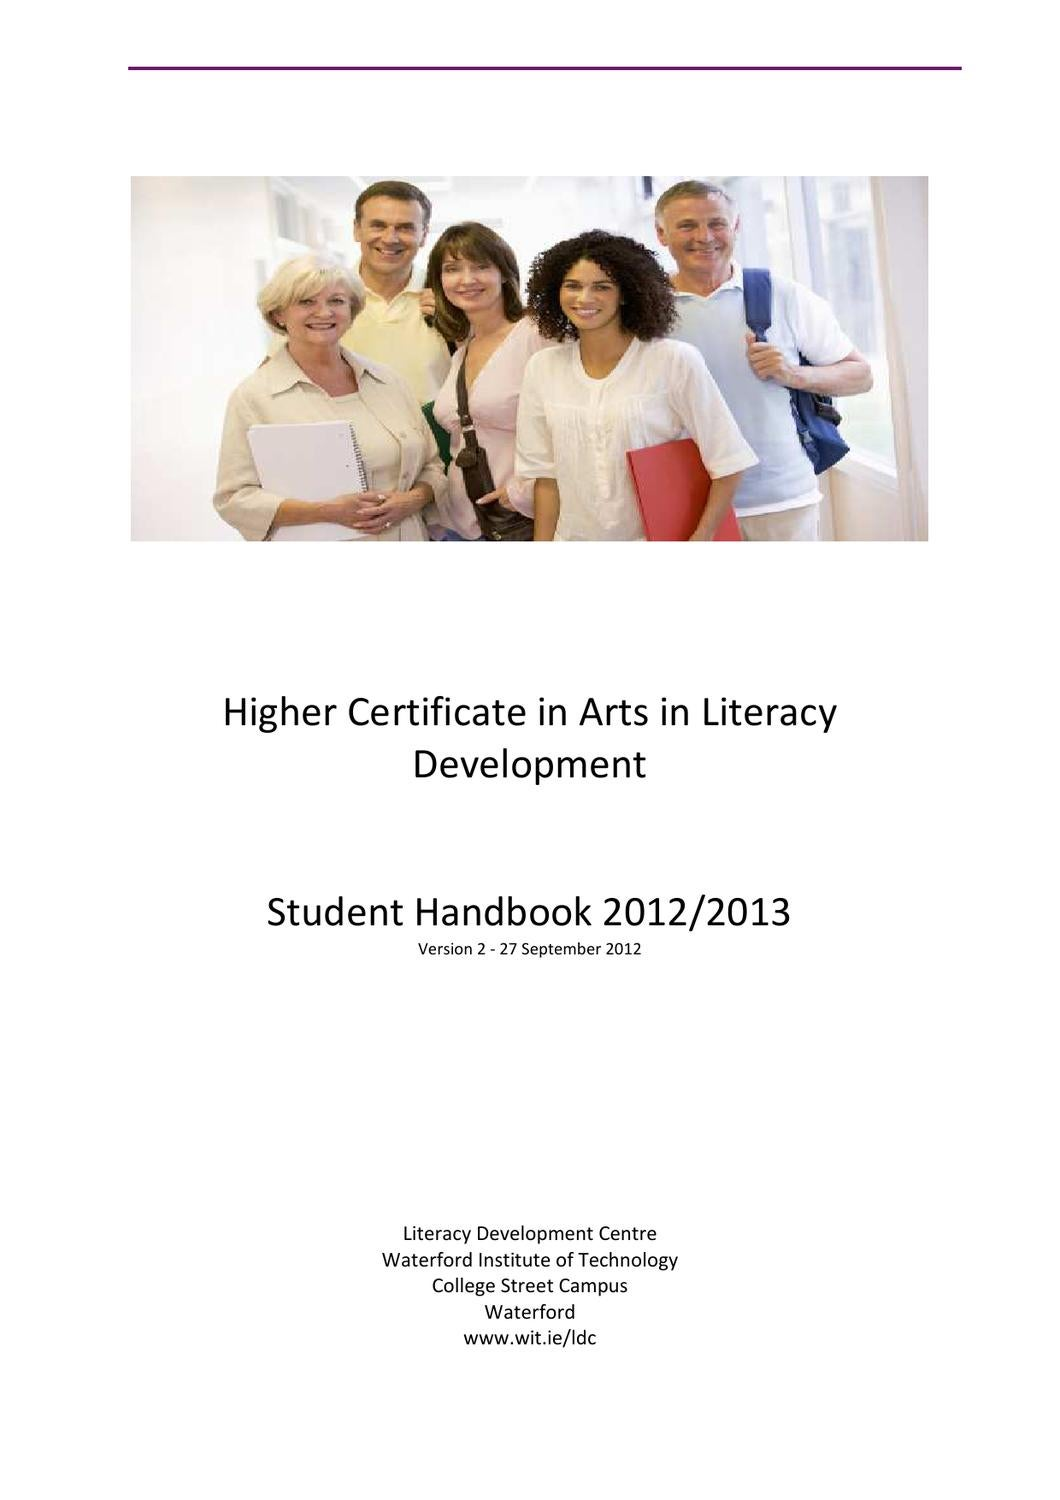 Higher Certificate In Arts In Literacy Development Student